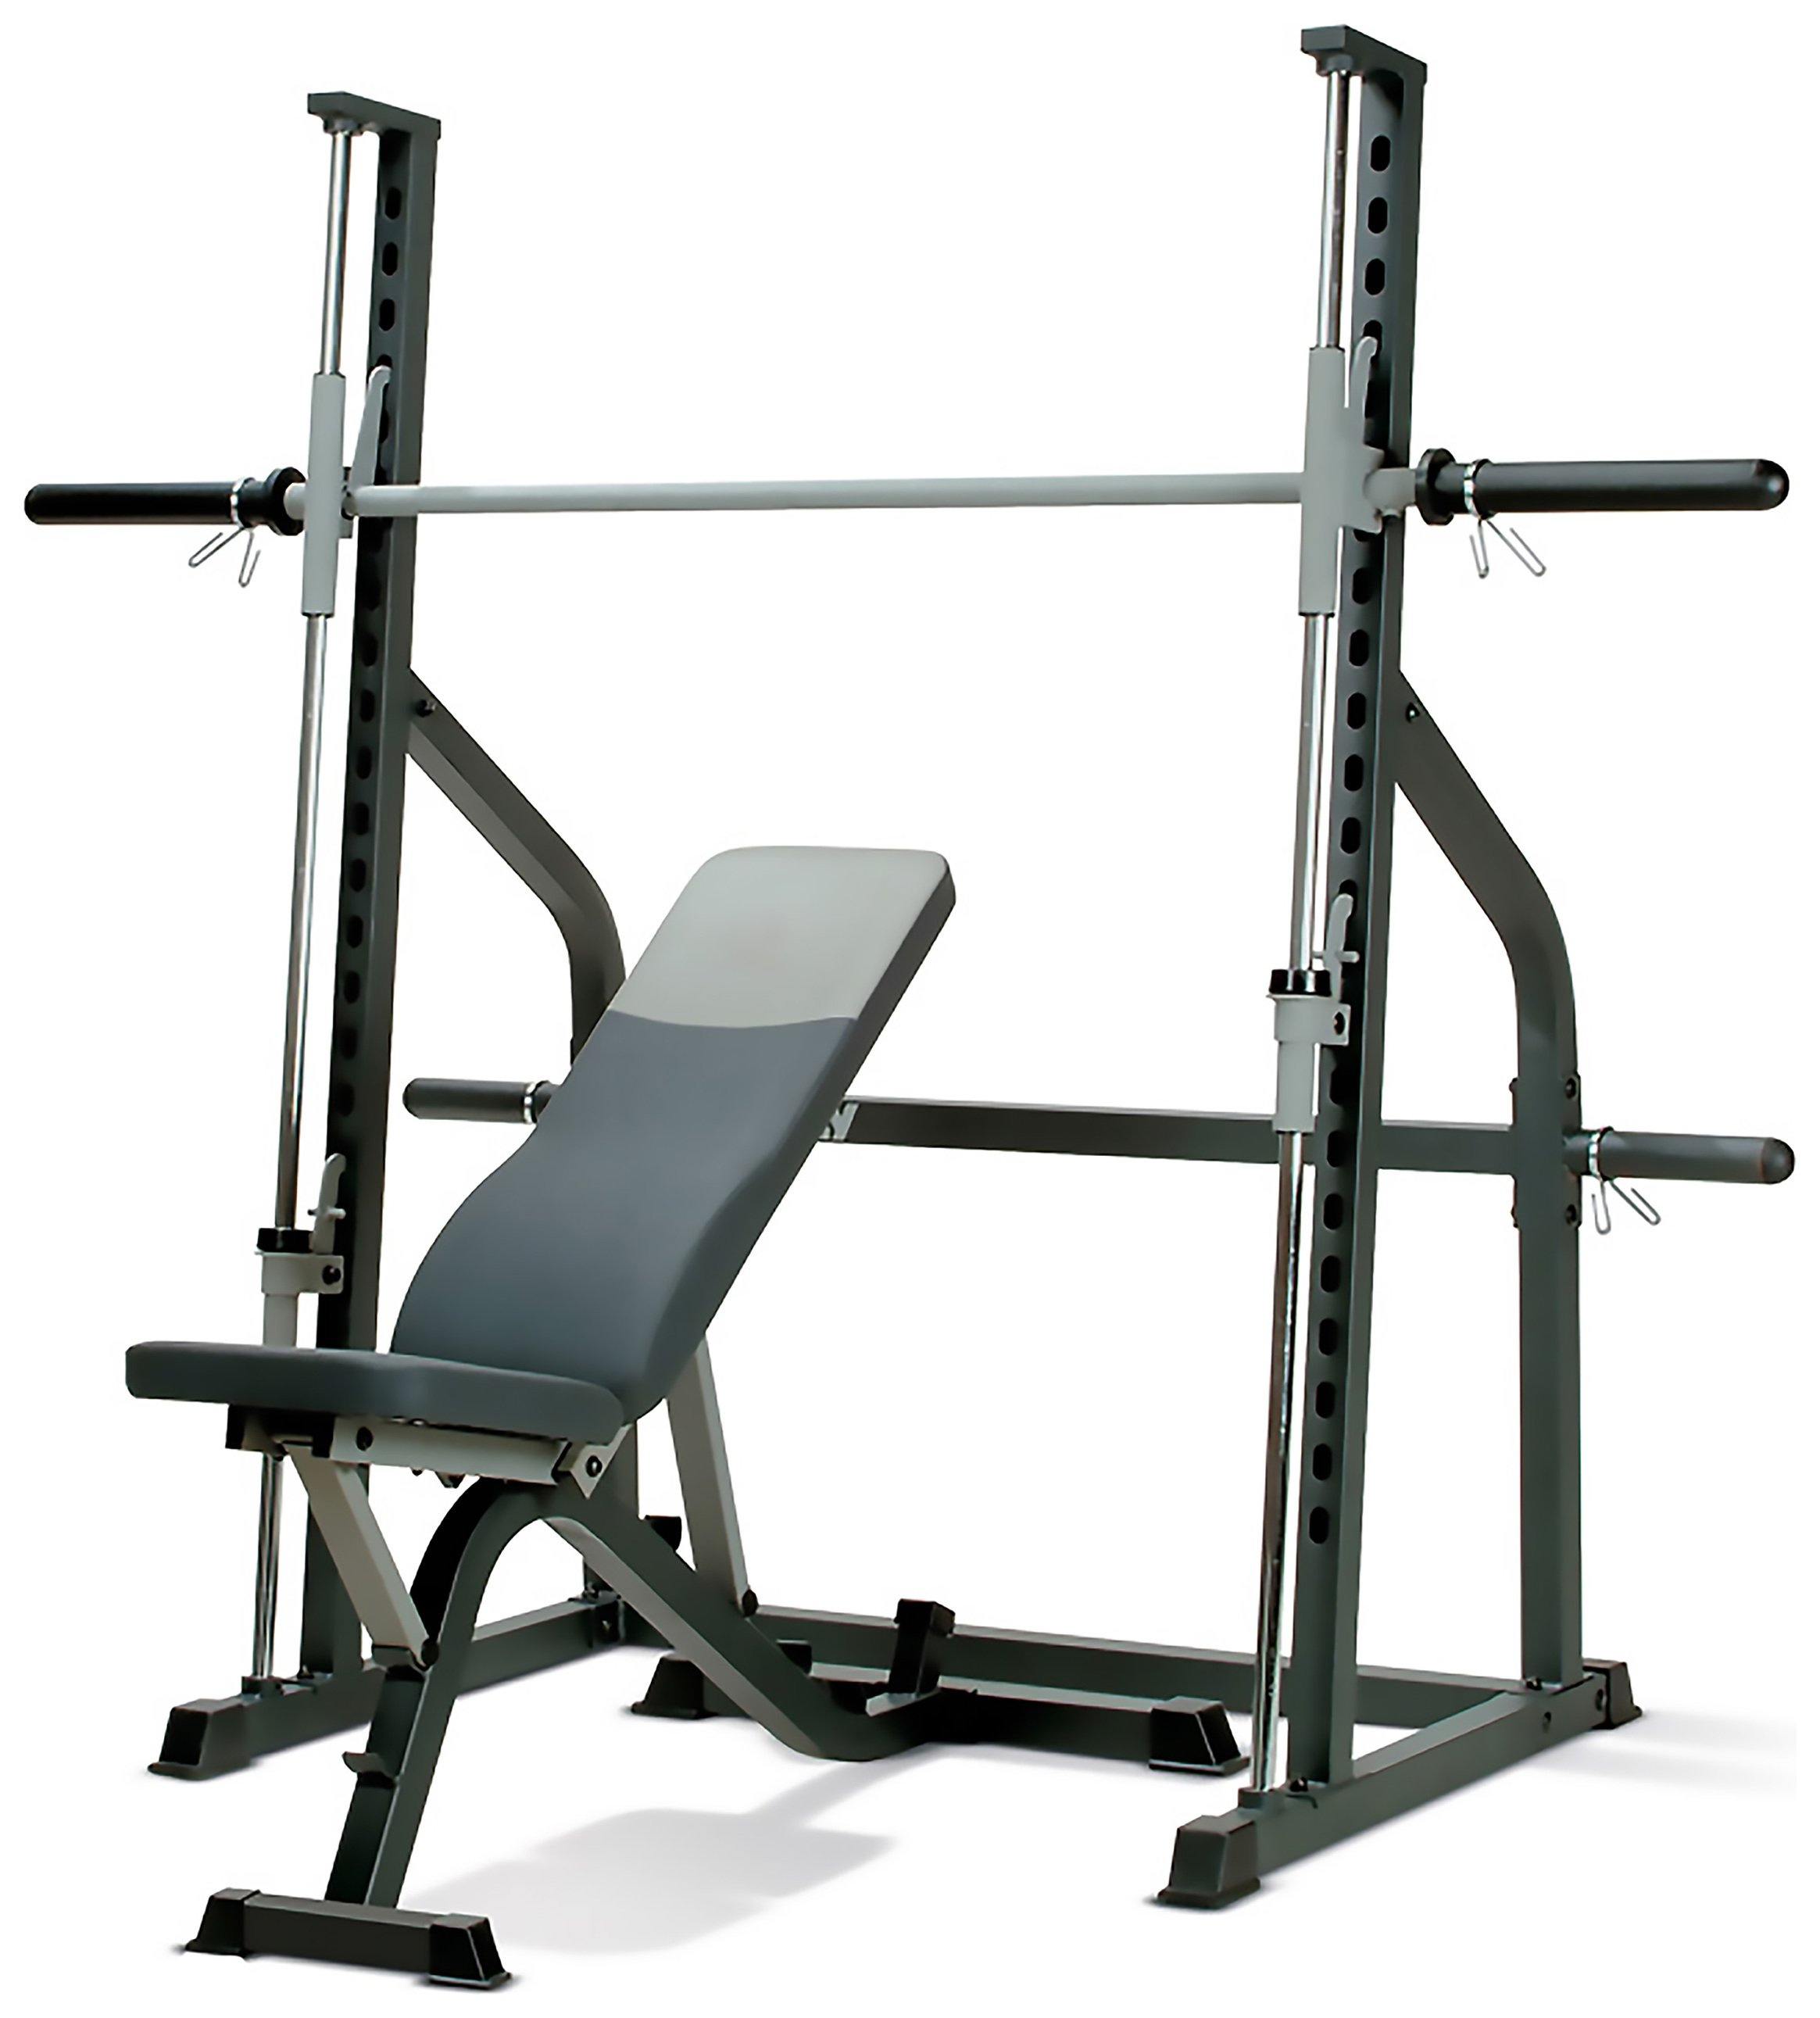 Marcy Sm600 Smith Machine Weight Bench Review